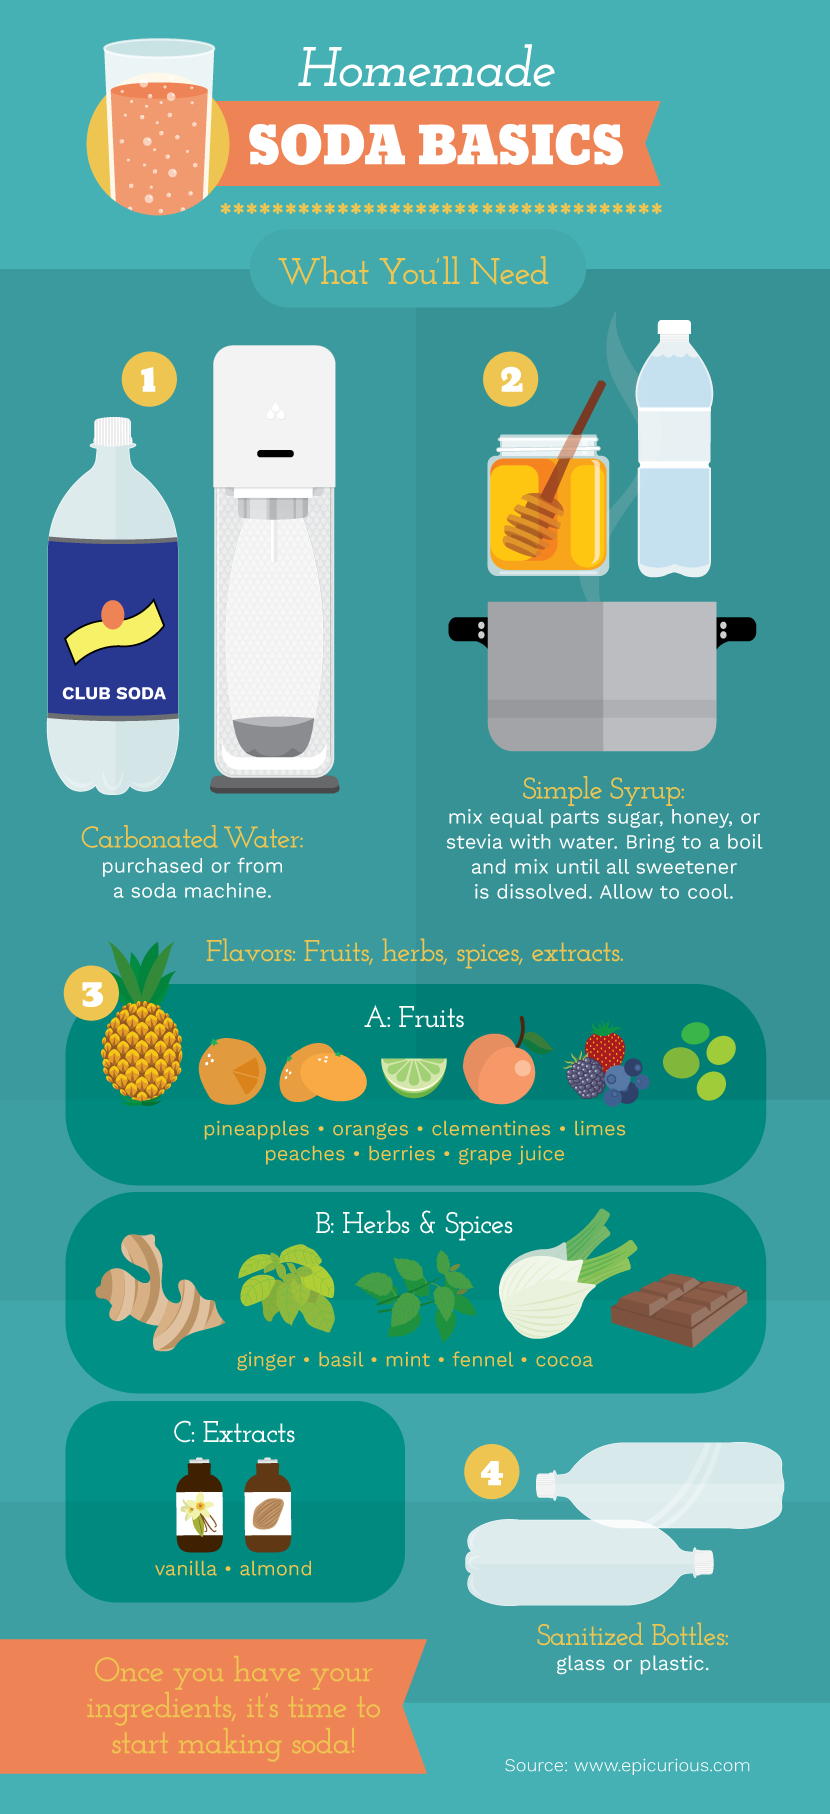 homemade soda basics